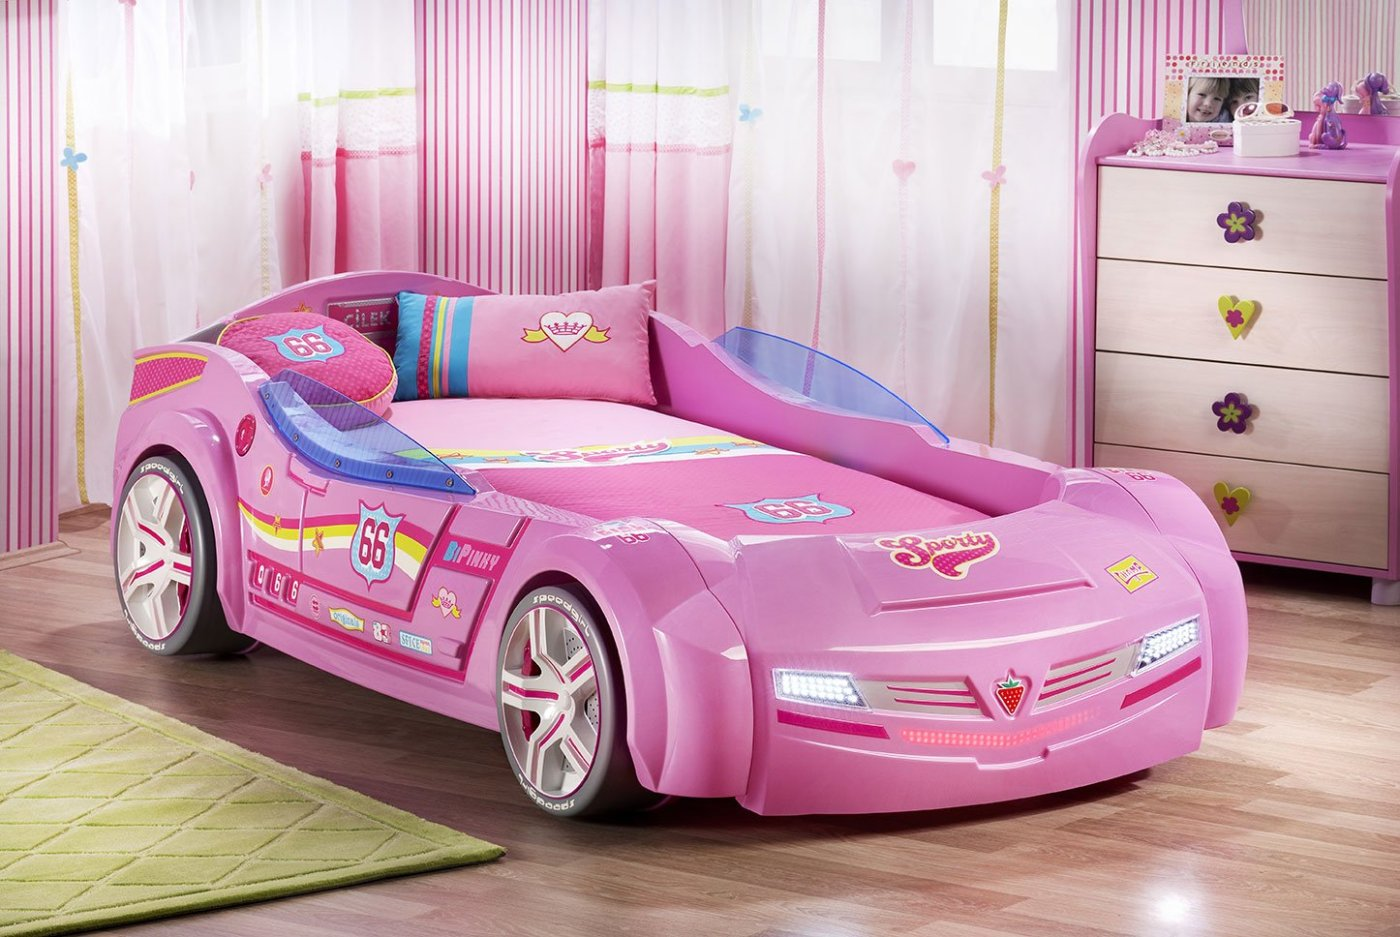 Turbo Car Bed - PRETTY IN PINK WITH MATTRESS